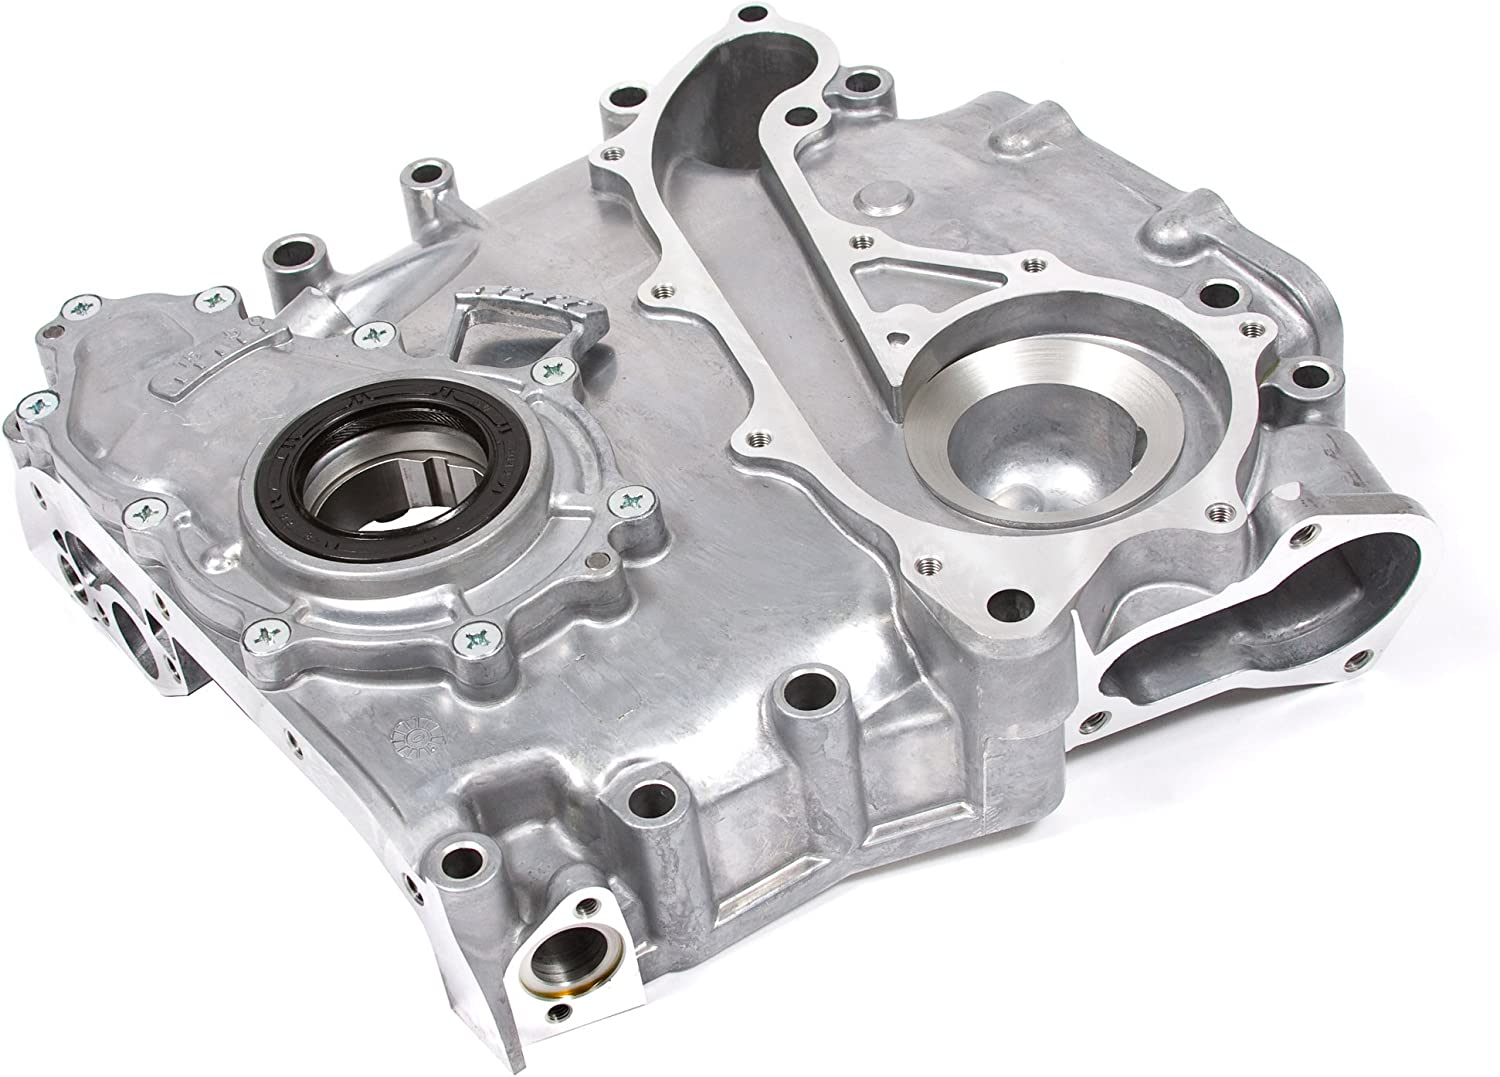 Fits 95-04 Toyota 2.4 DOHC 16V 2RZFE Timing Chain Cover